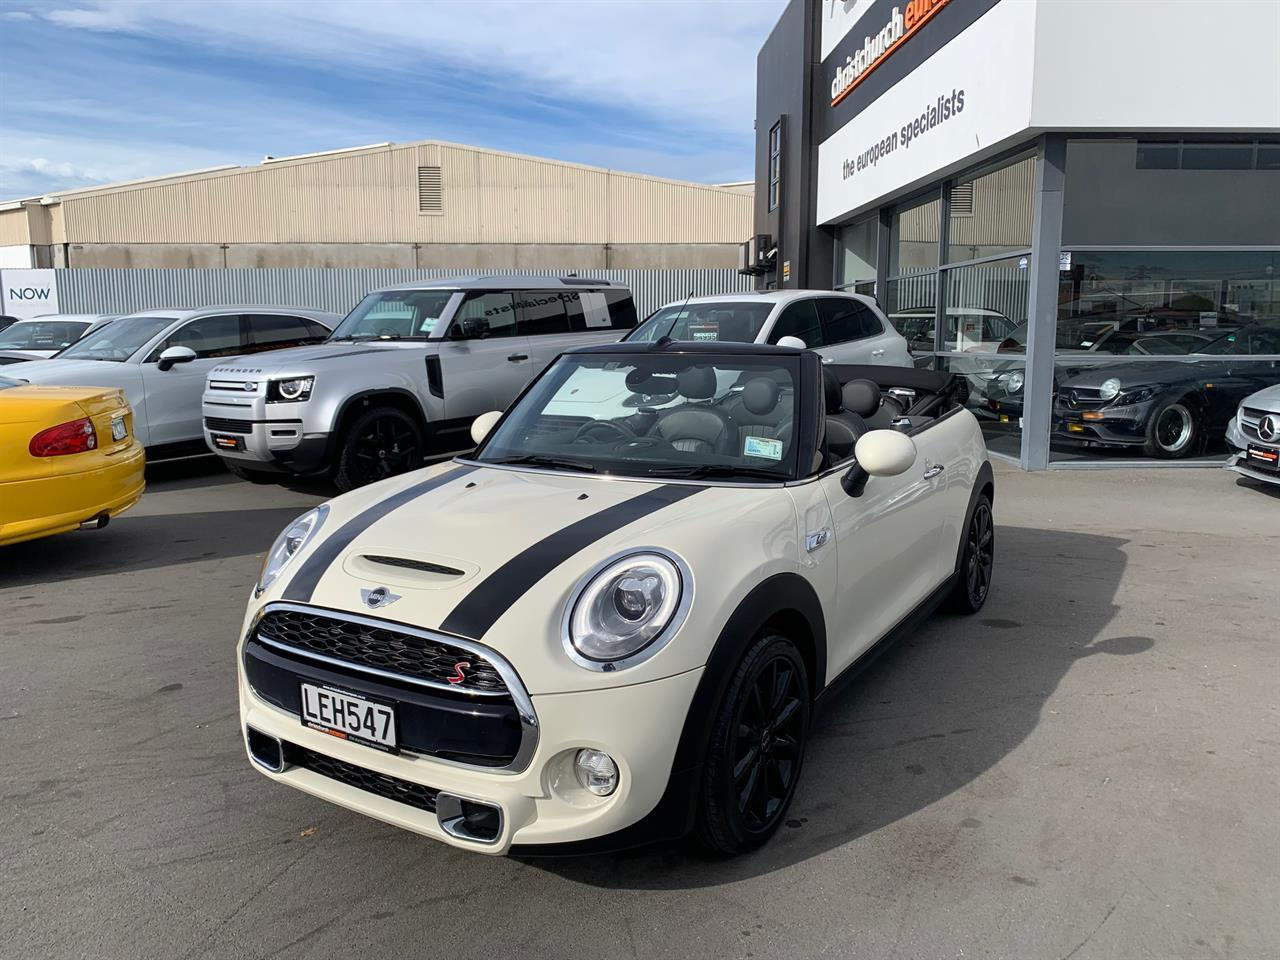 image-2, 2018 Mini Cooper S 2.0T 6 Speed Manual Cabriolet N at Christchurch